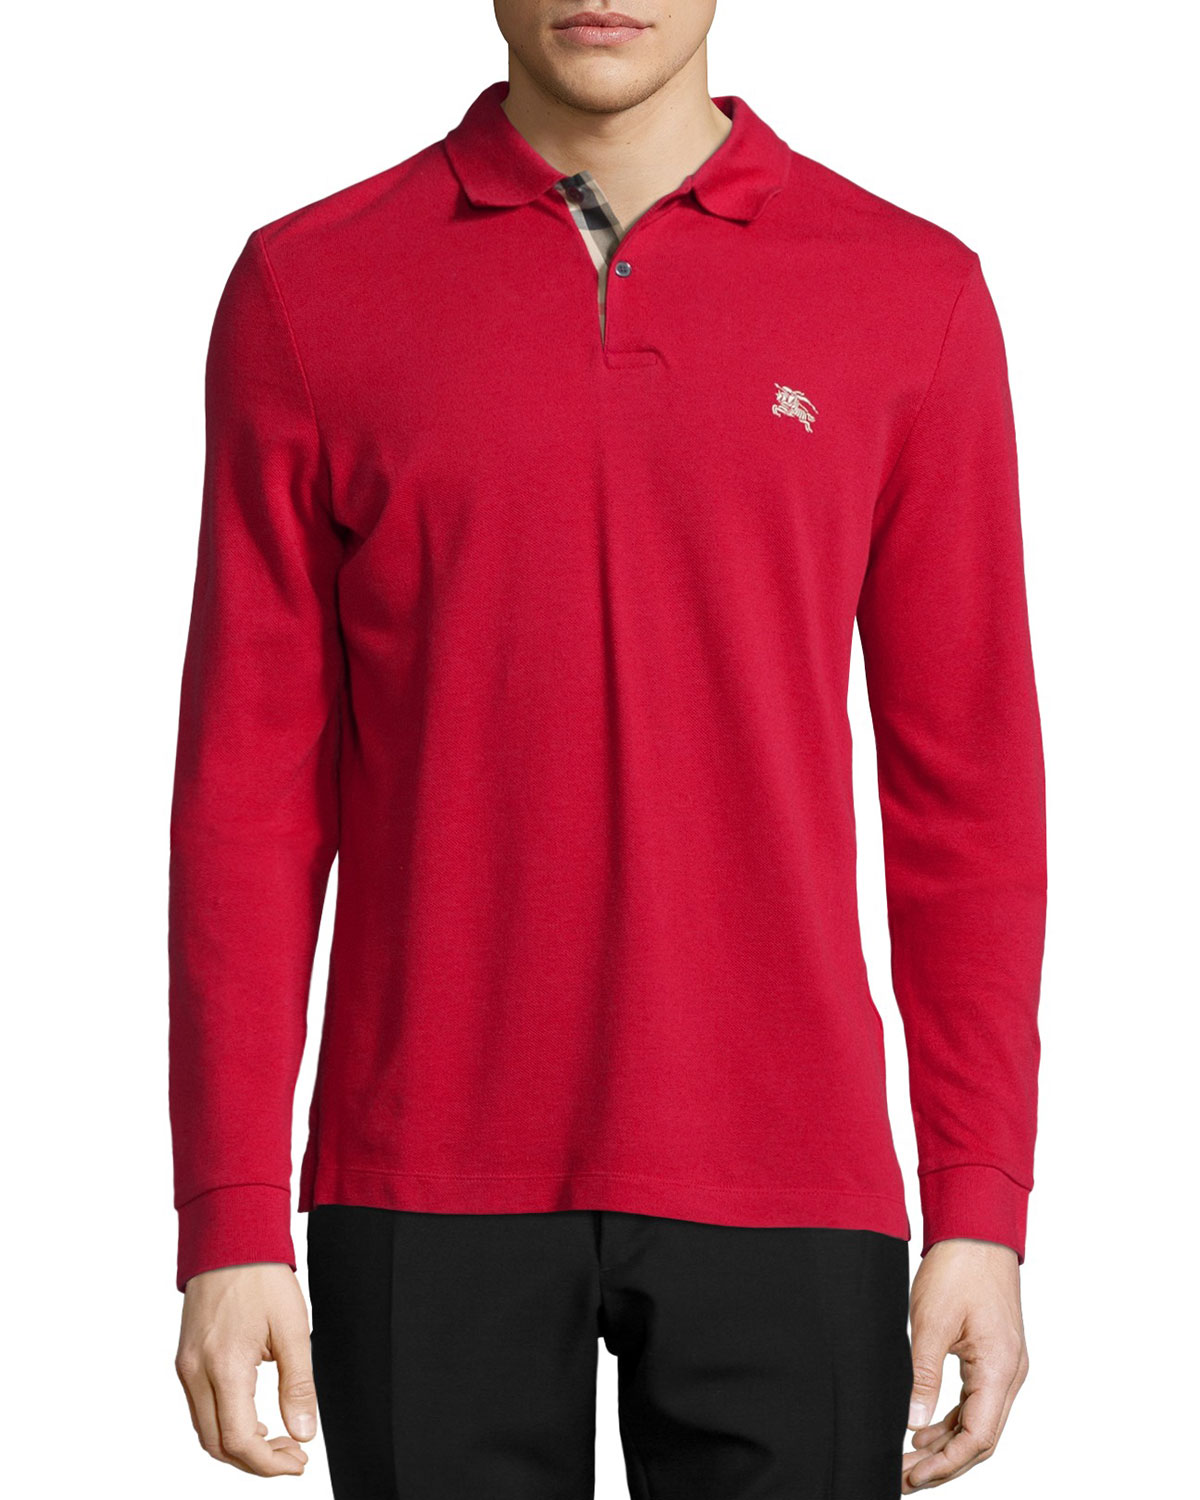 Burberry Brit Long Sleeve Pique Polo Shirt Red Neiman Marcus